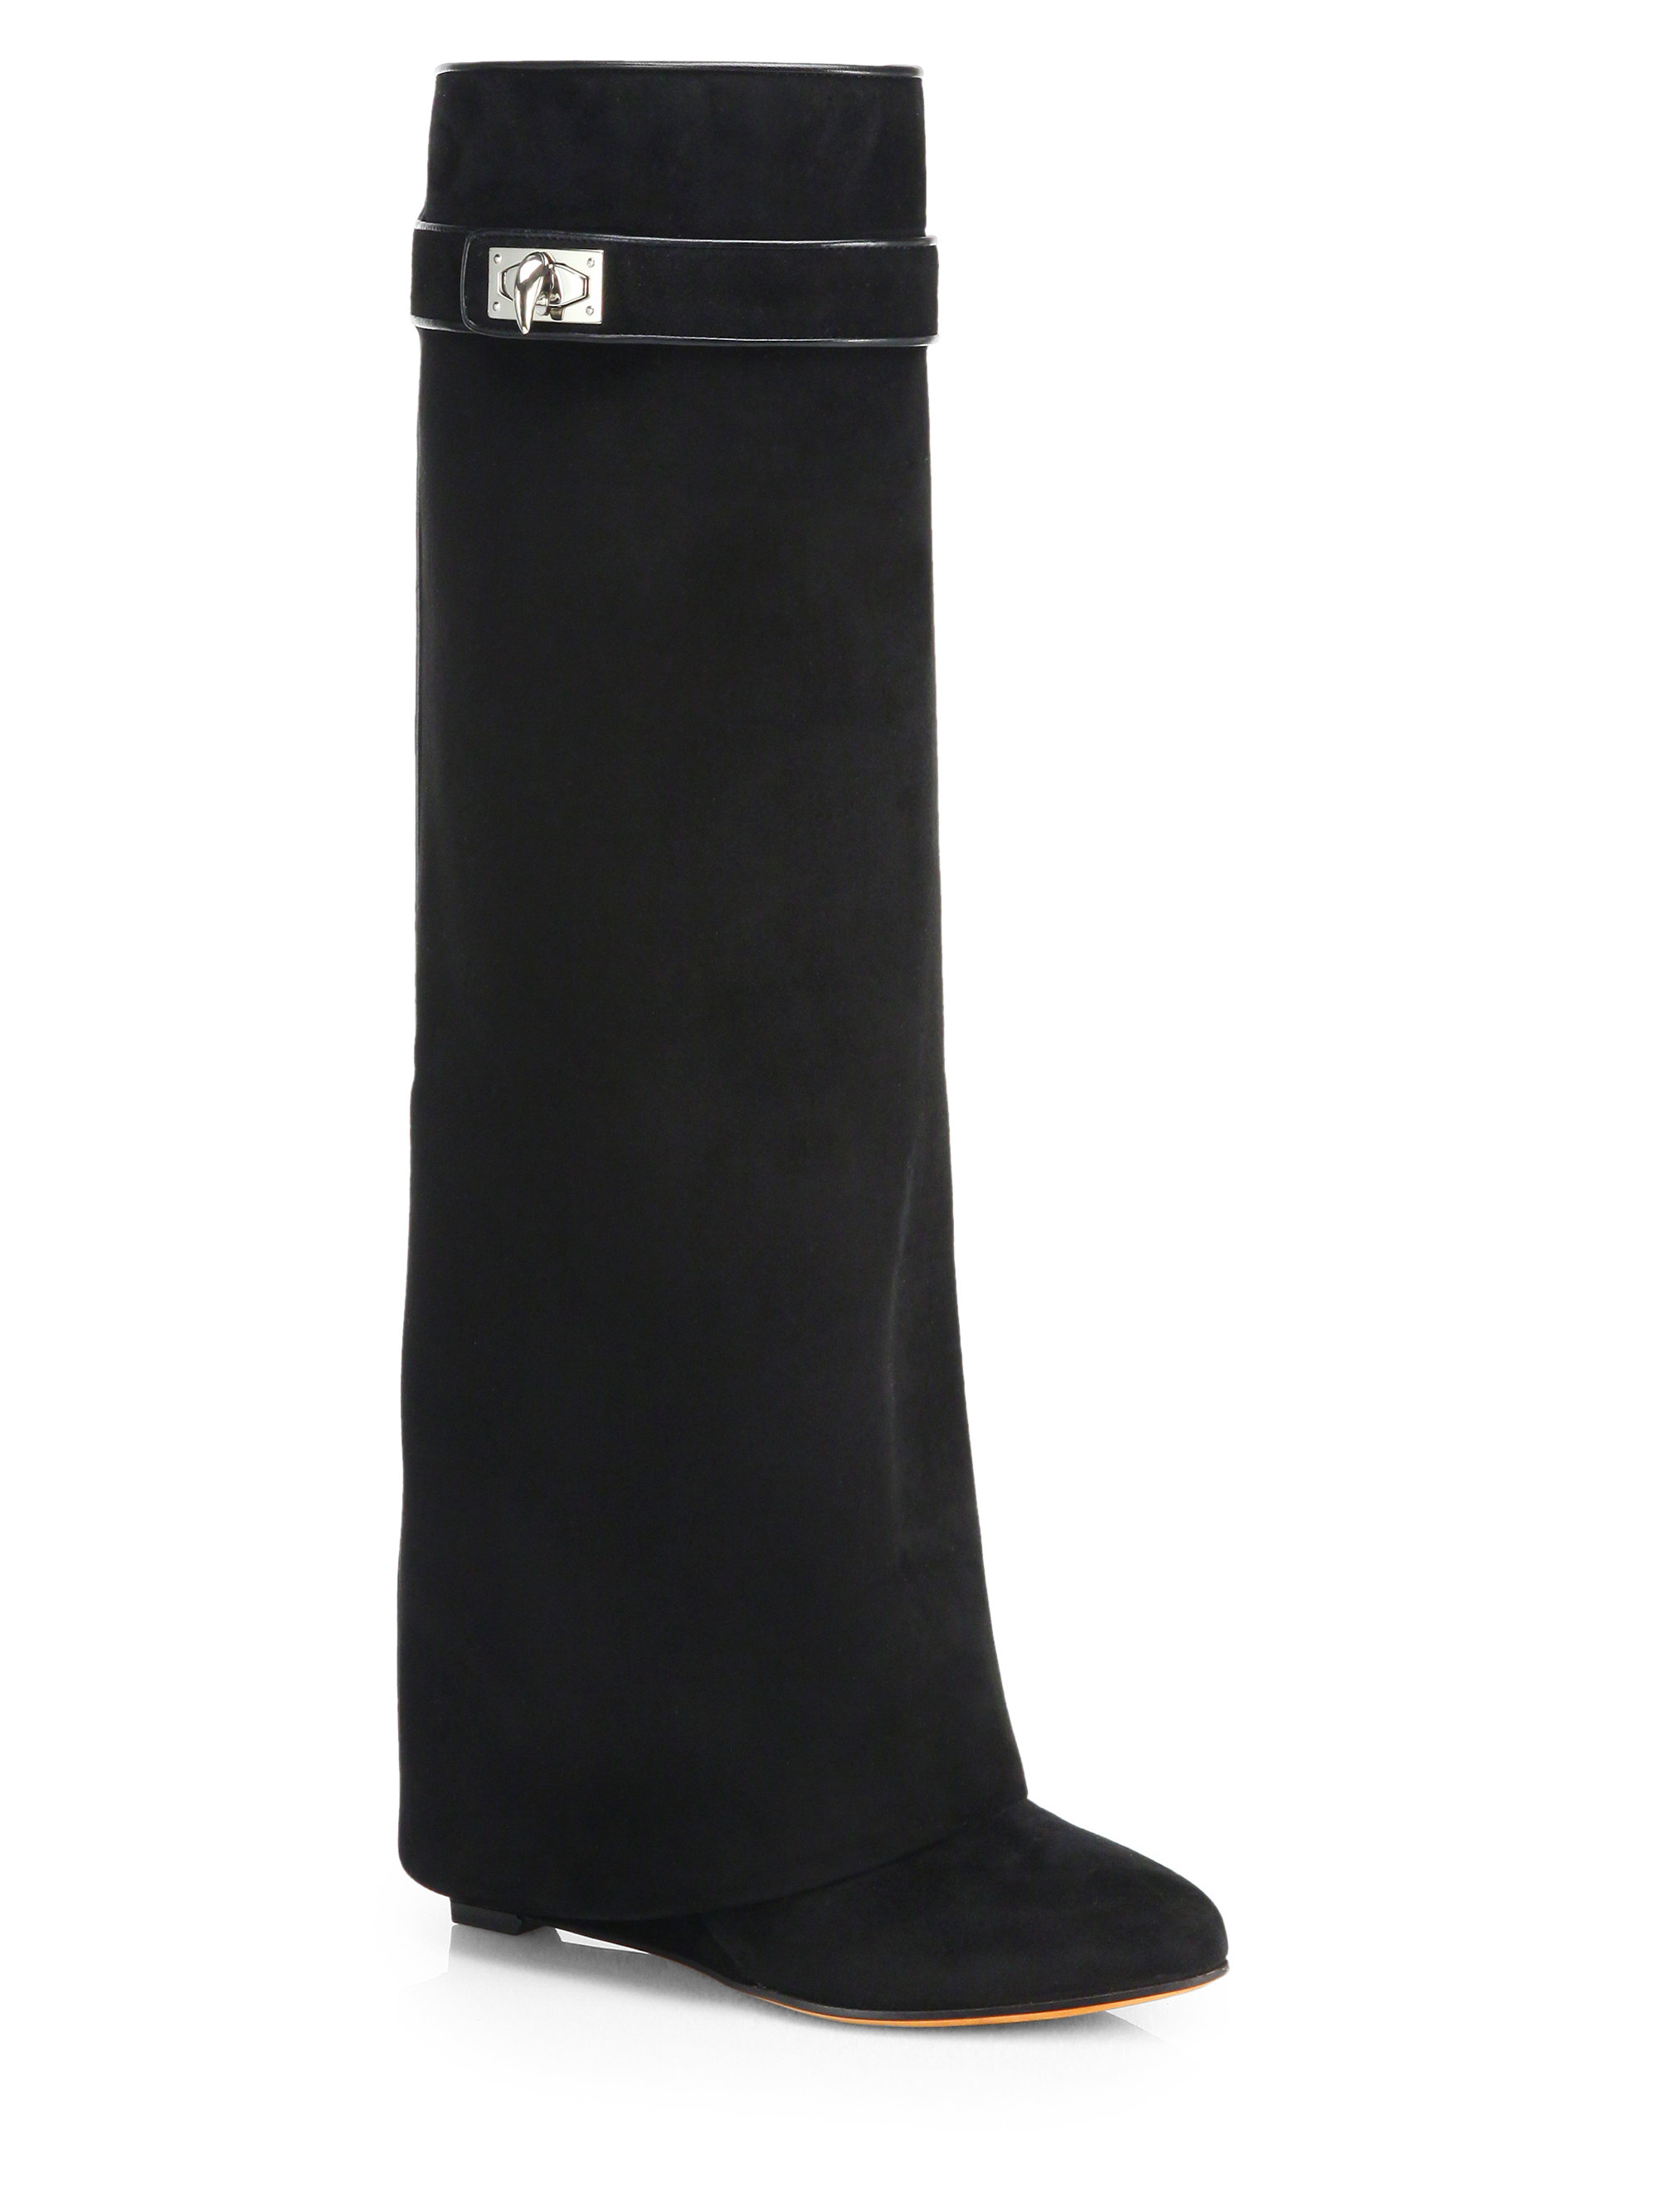 givenchy suede knee high wedge boots in black lyst